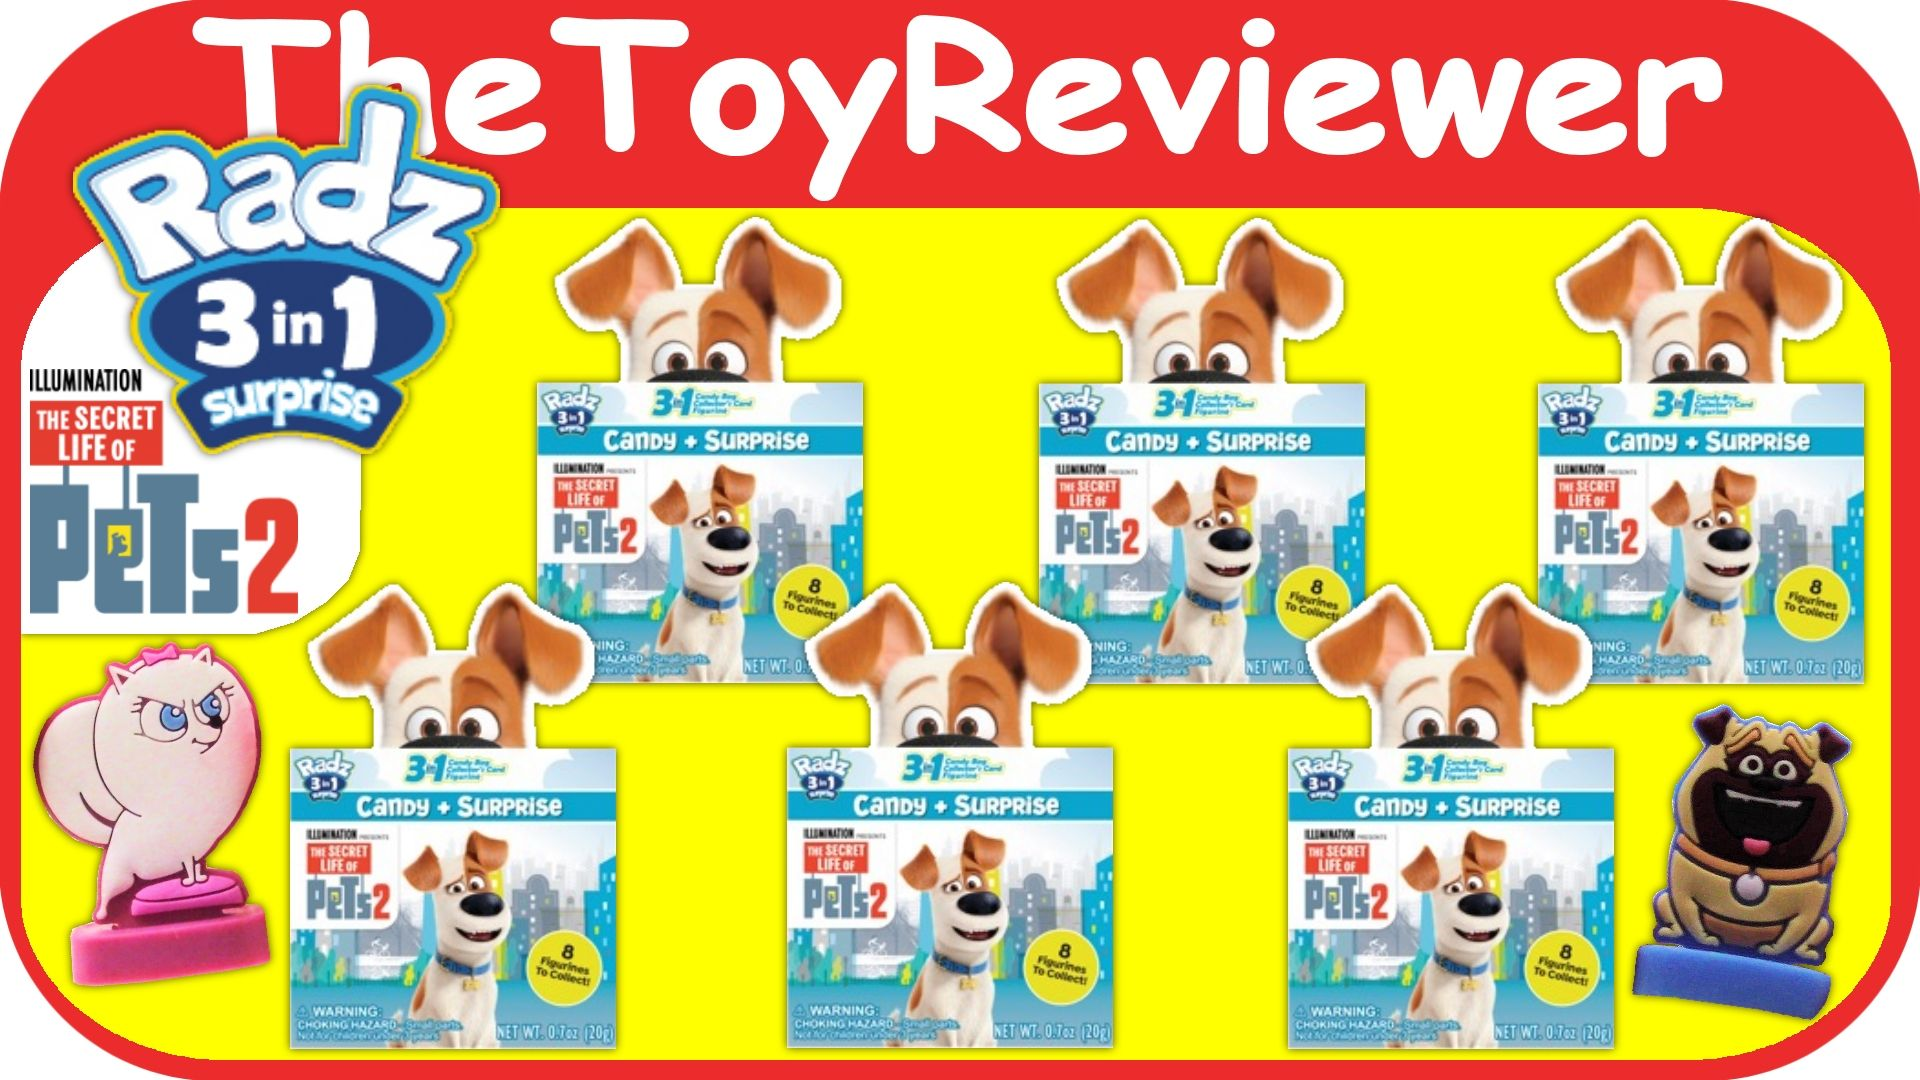 Check Out The Secret Life Of Pets 2 Radz 3in1blind Boxes Here Https Www Youtube Com Watch V Uryglp Fe K Secret Life Of Pets Secret Life The Secret